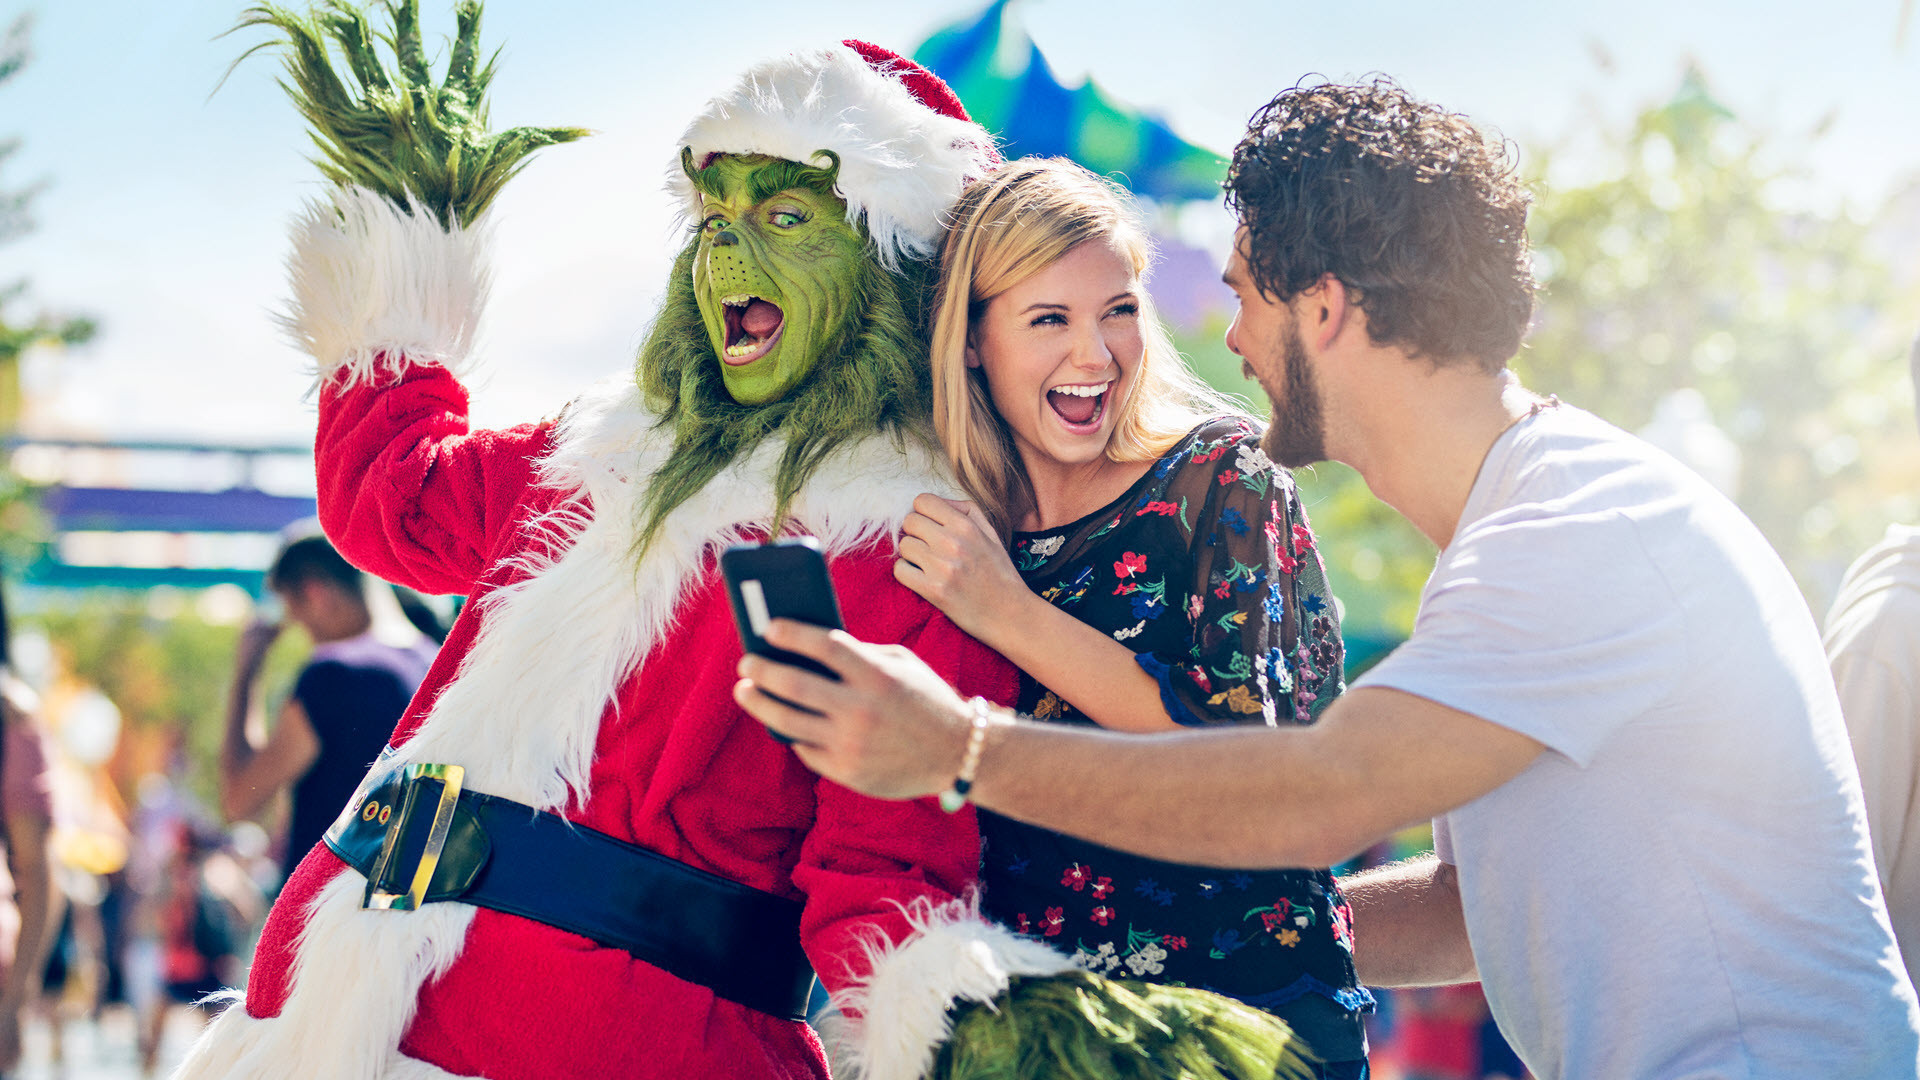 HOLIDAYS AT UNIVERSAL ORLANDO RESORT™ | Universal Orlando™ is unwrapping a resort-wide celebration that will elevate your season. And your favorites are back, too.